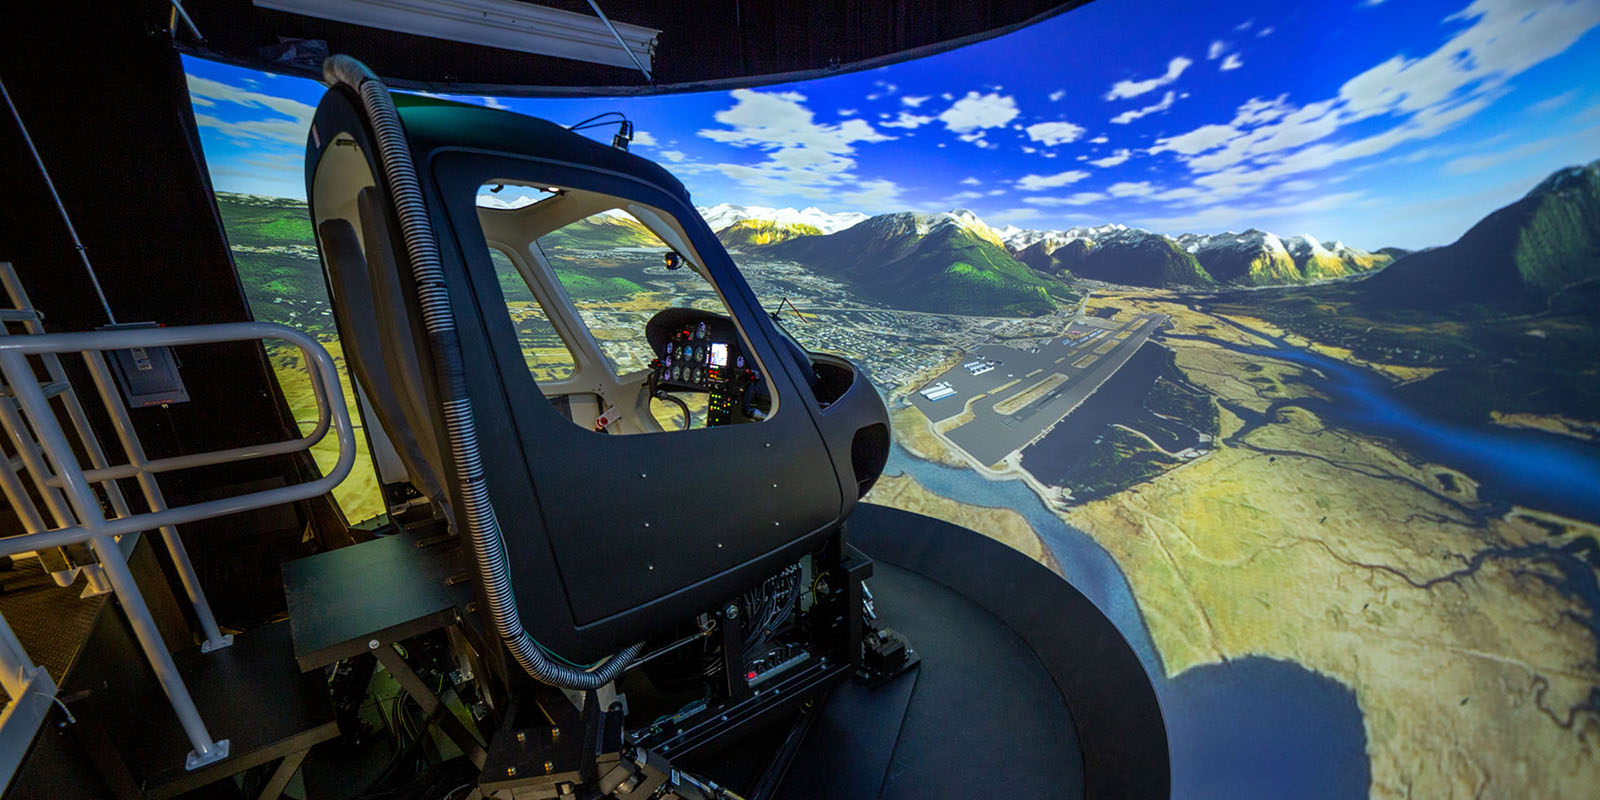 Helicopter Simulation Training: Should It Pay to Play?